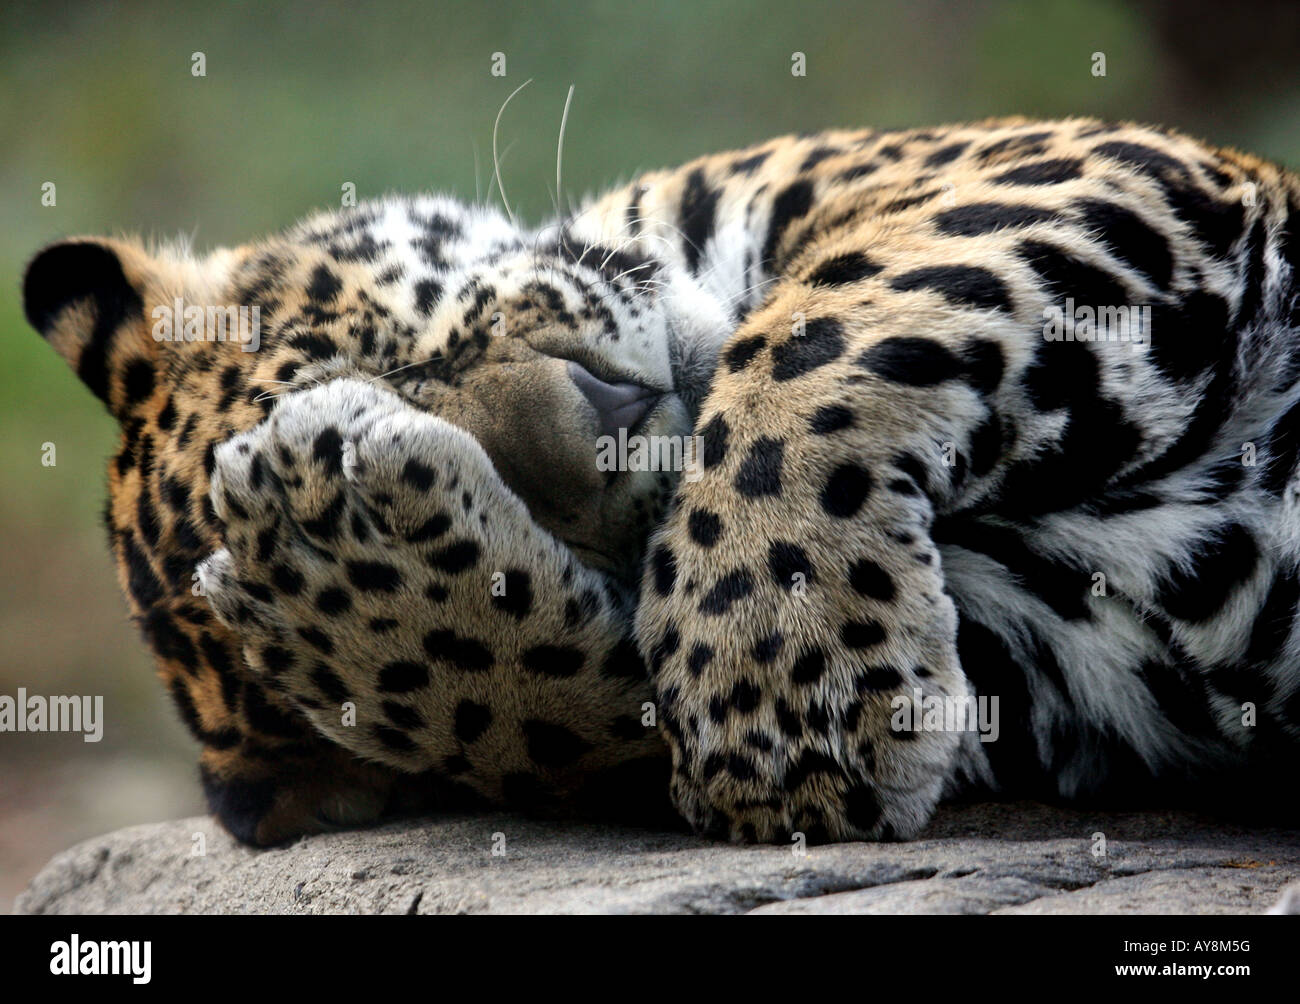 A baby jaguar uses its paw to cover its face at the Stone Zoo. - Stock Image